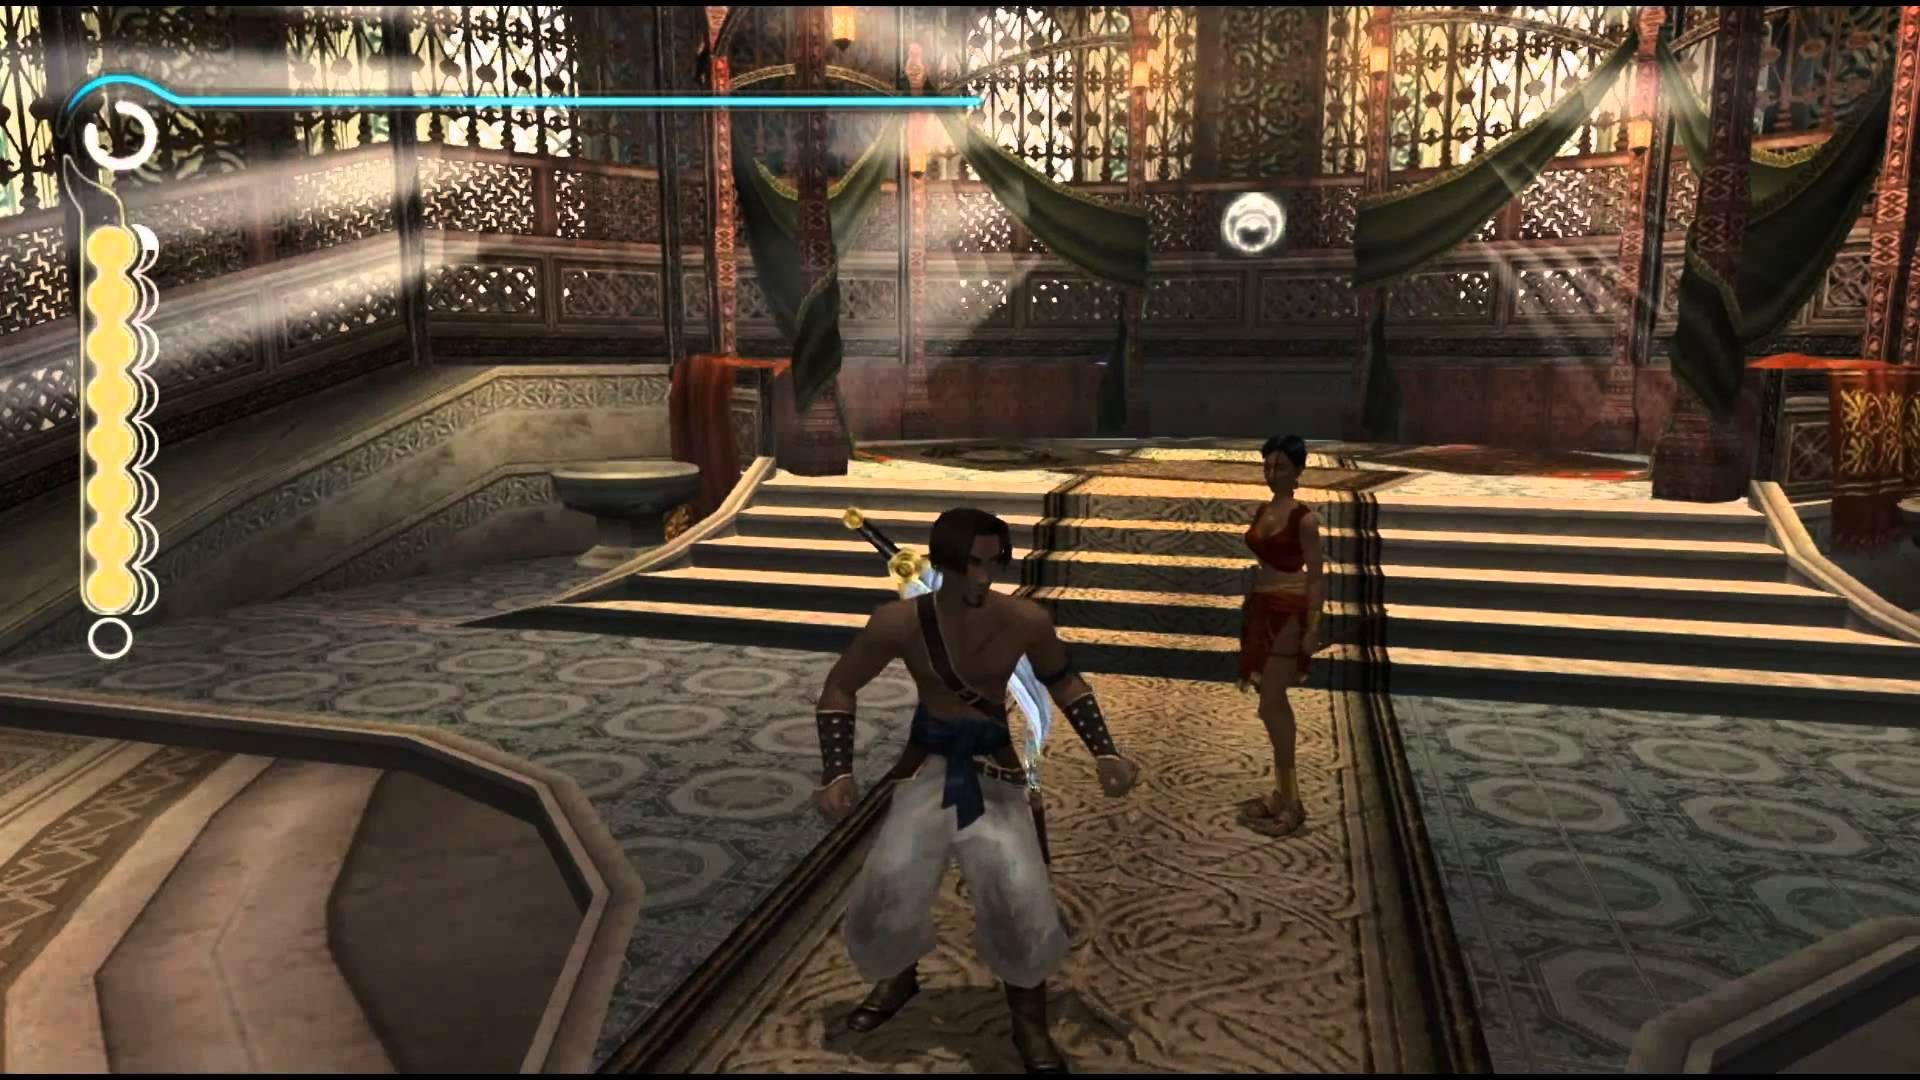 Prince Of Persia The Sands Of Time Trilogy 3d Walkthrough Gameplay Ps3 H Prince Of Persia Persia Prince